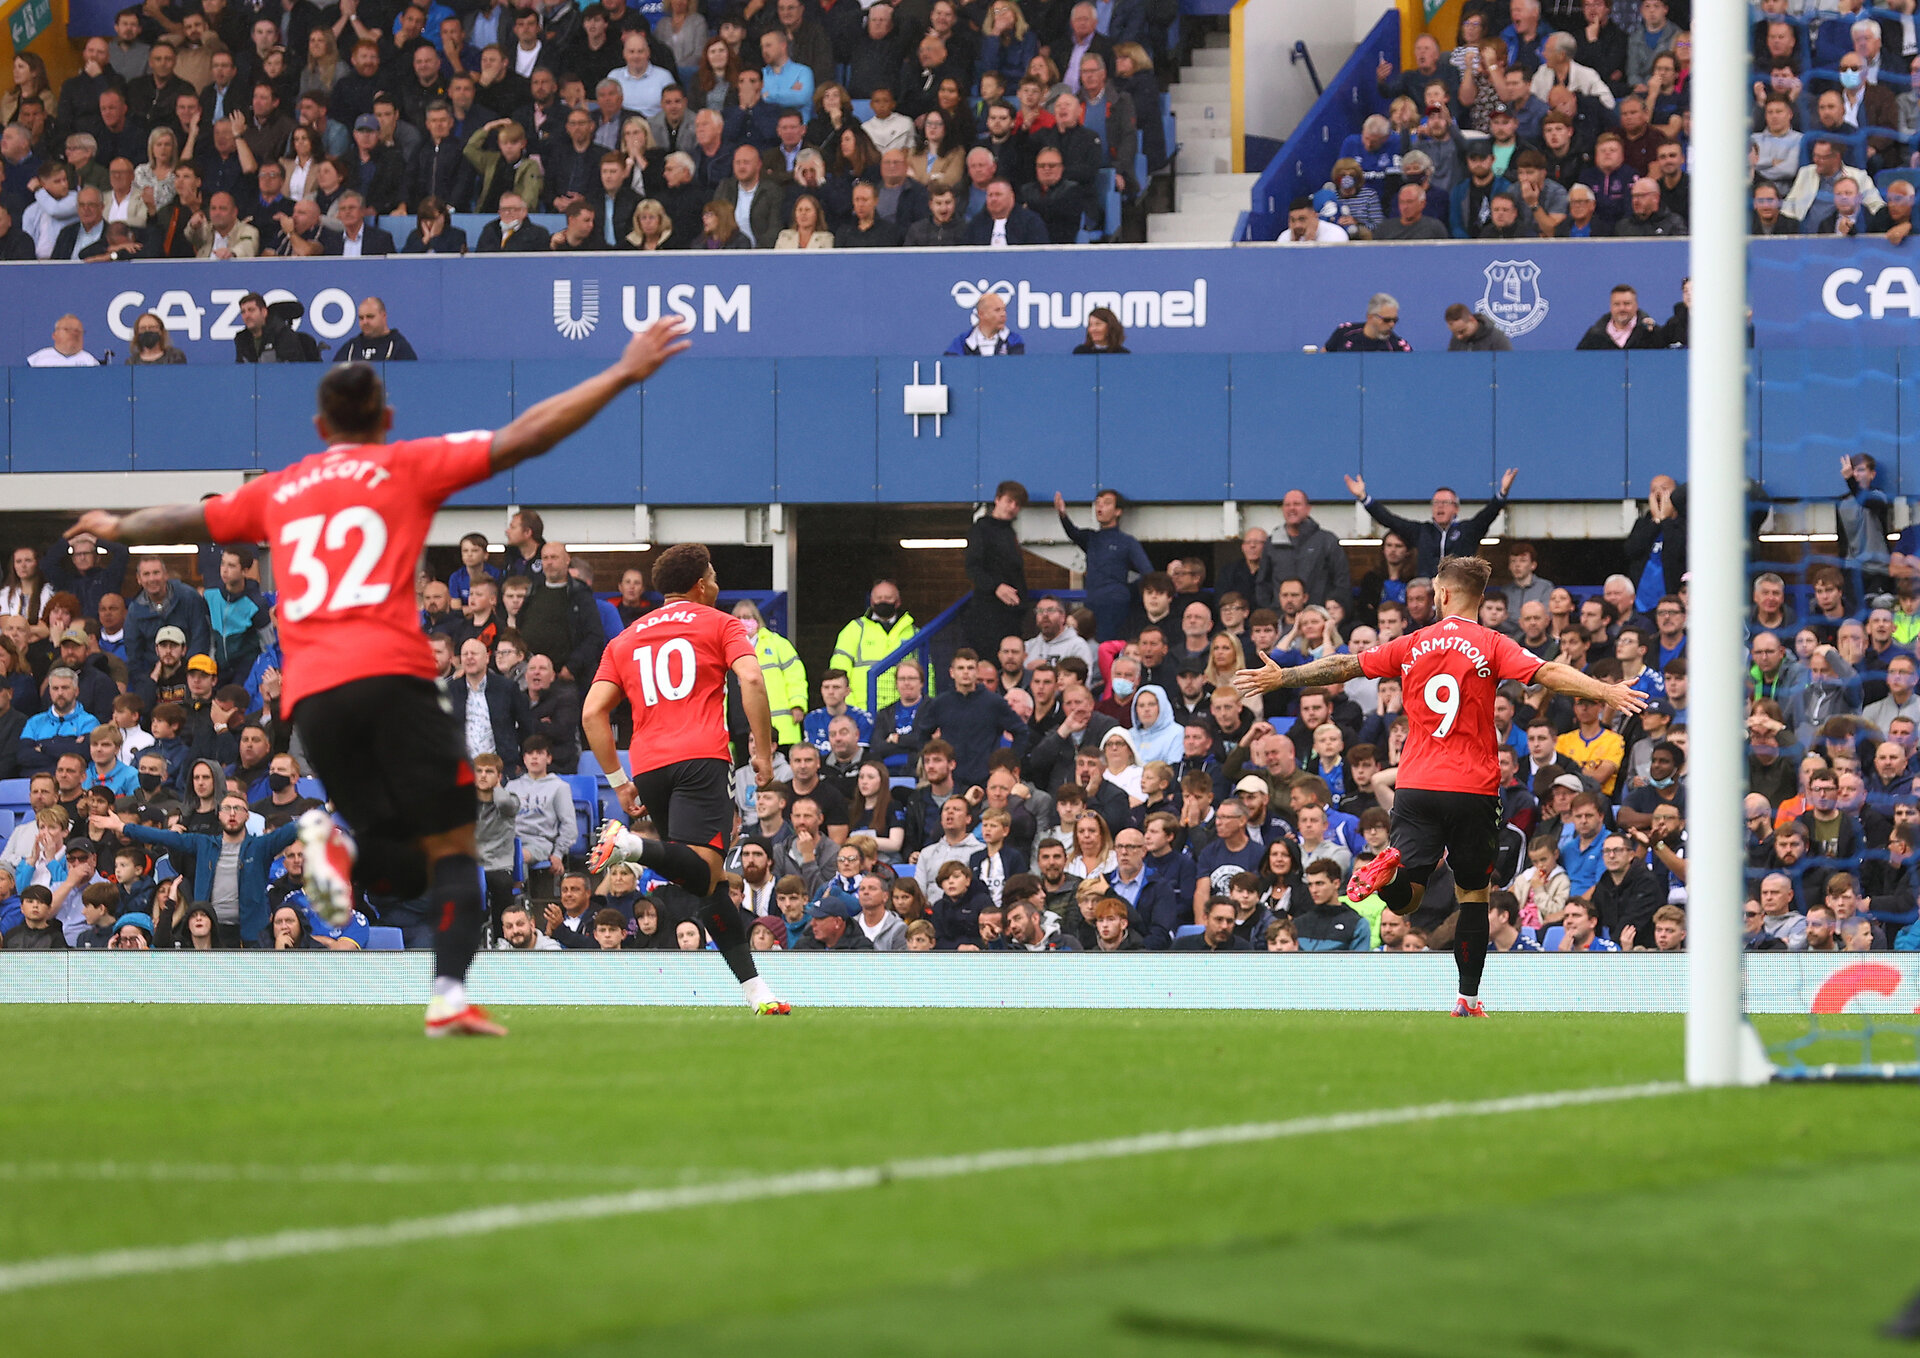 LIVERPOOL, ENGLAND - AUGUST 14: Adam Armstrong of Southampton celebrates after opening the scoring during the Premier League match between Everton  and  Southampton at Goodison Park on August 14, 2021 in Liverpool, England. (Photo by Matt Watson/Southampton FC via Getty Images)